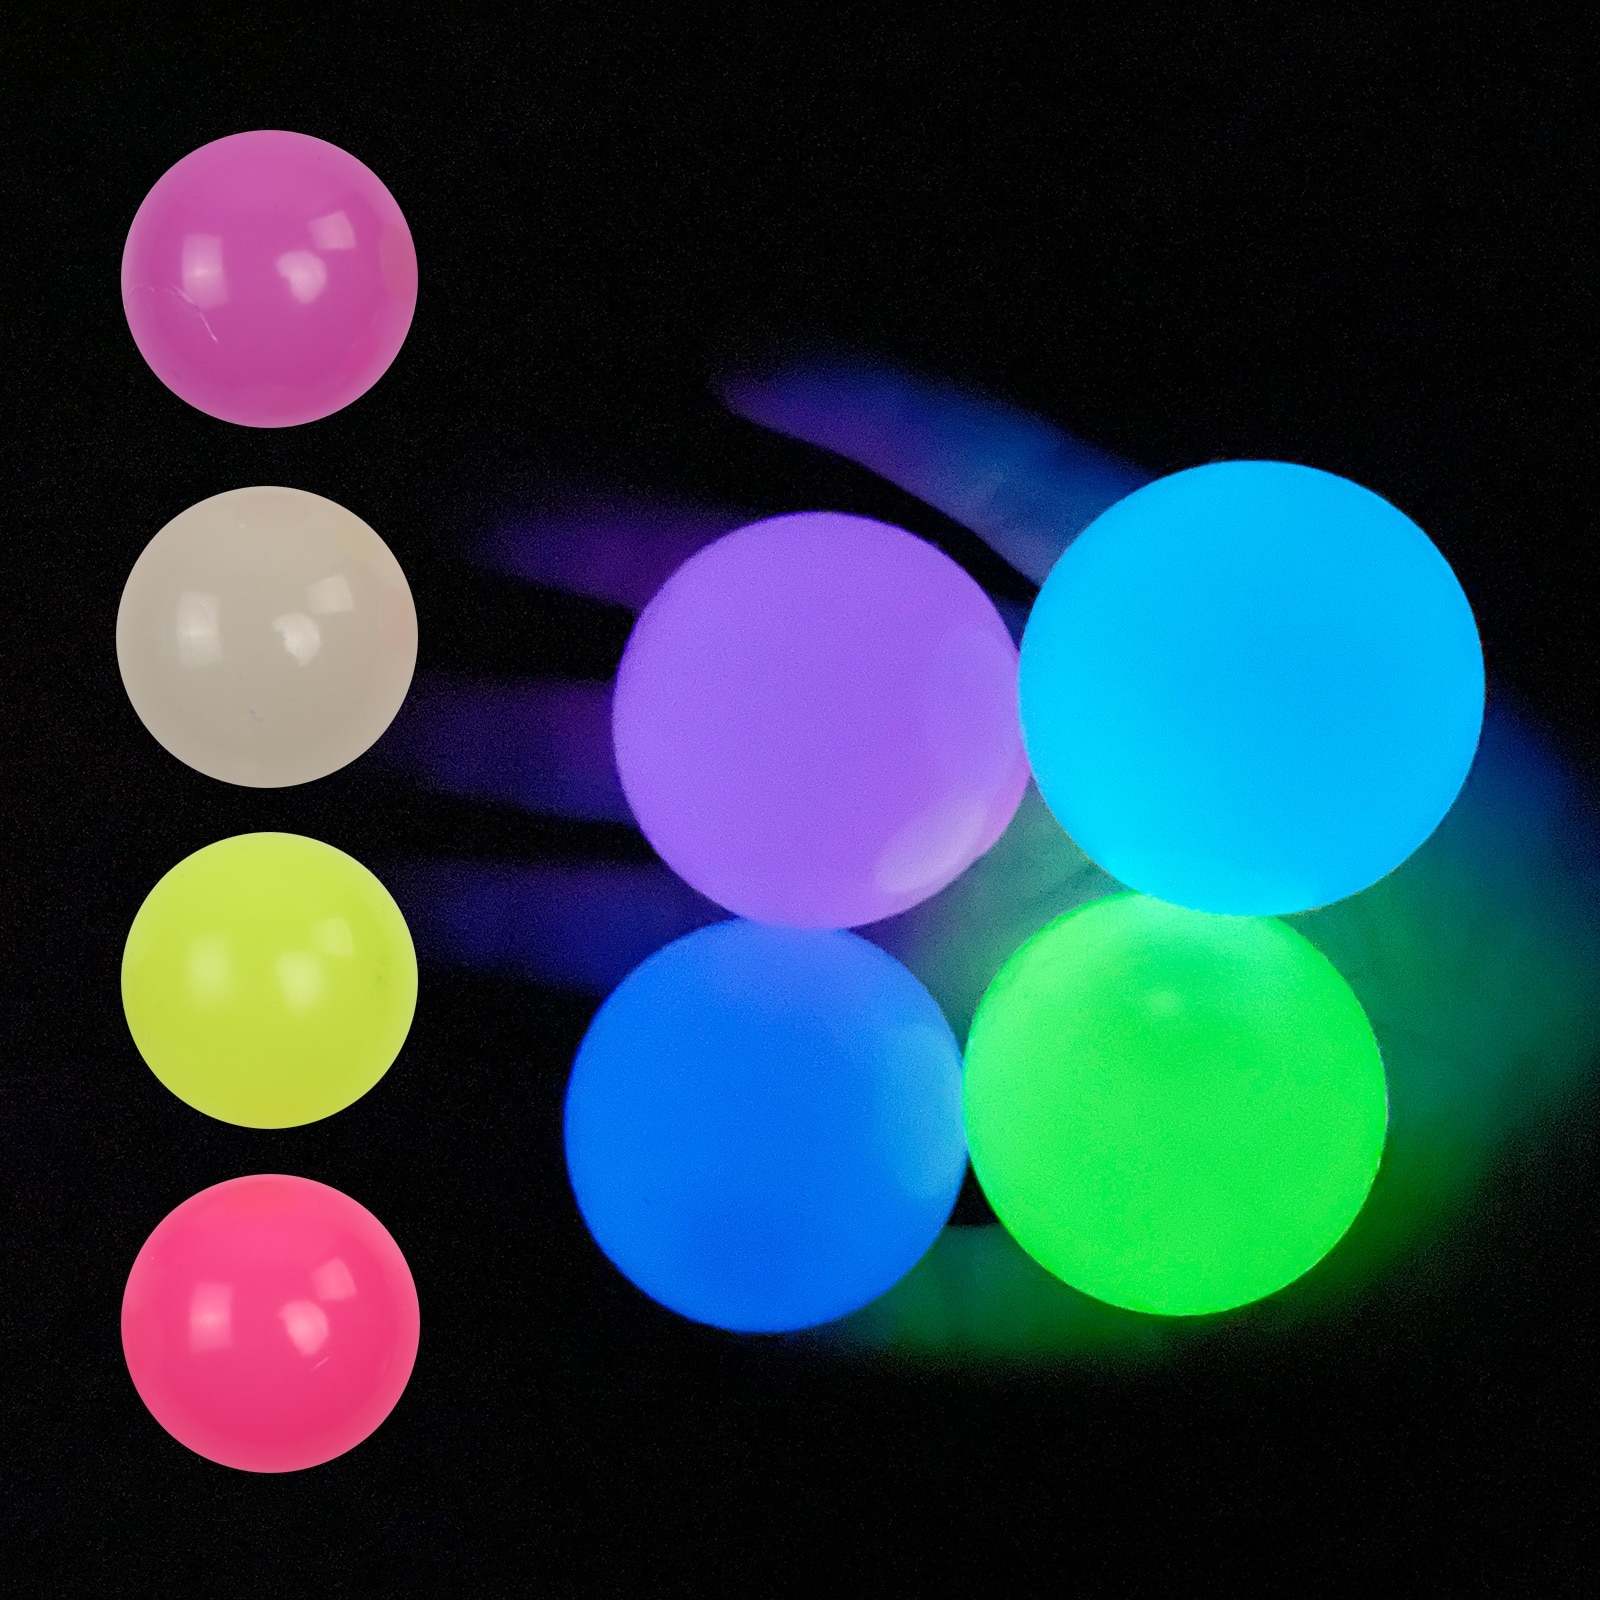 4 Pcs Luminous Wall Target Ball Sucker Sticky Decompression Toys for Kid Teen  Colorful TPR Toy Balls Color Random 4 Size